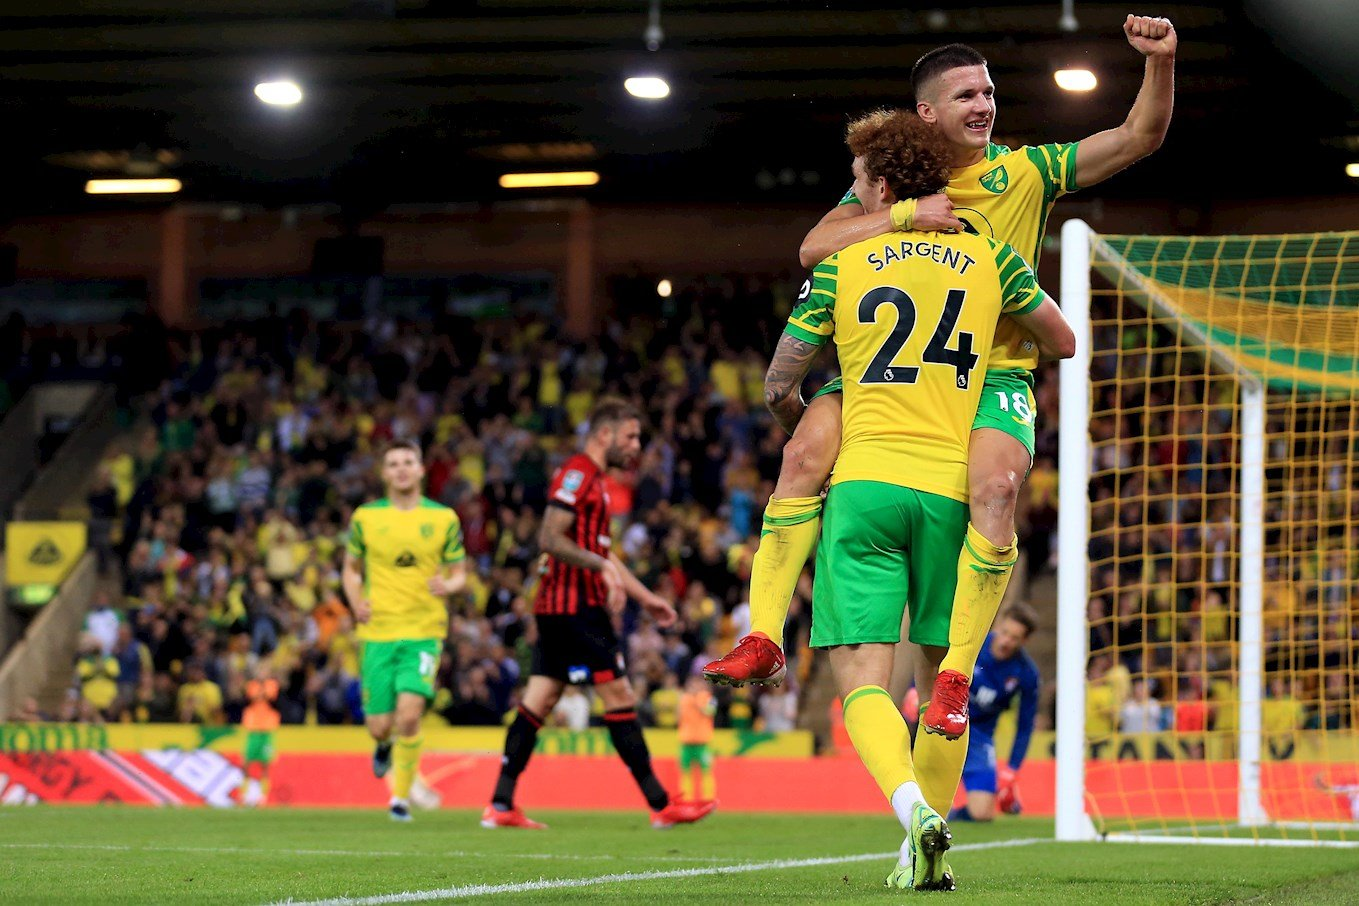 tzolis-and-sargent-both-hit-braces-in-carabao-cup-win-over-afc-bournemouth